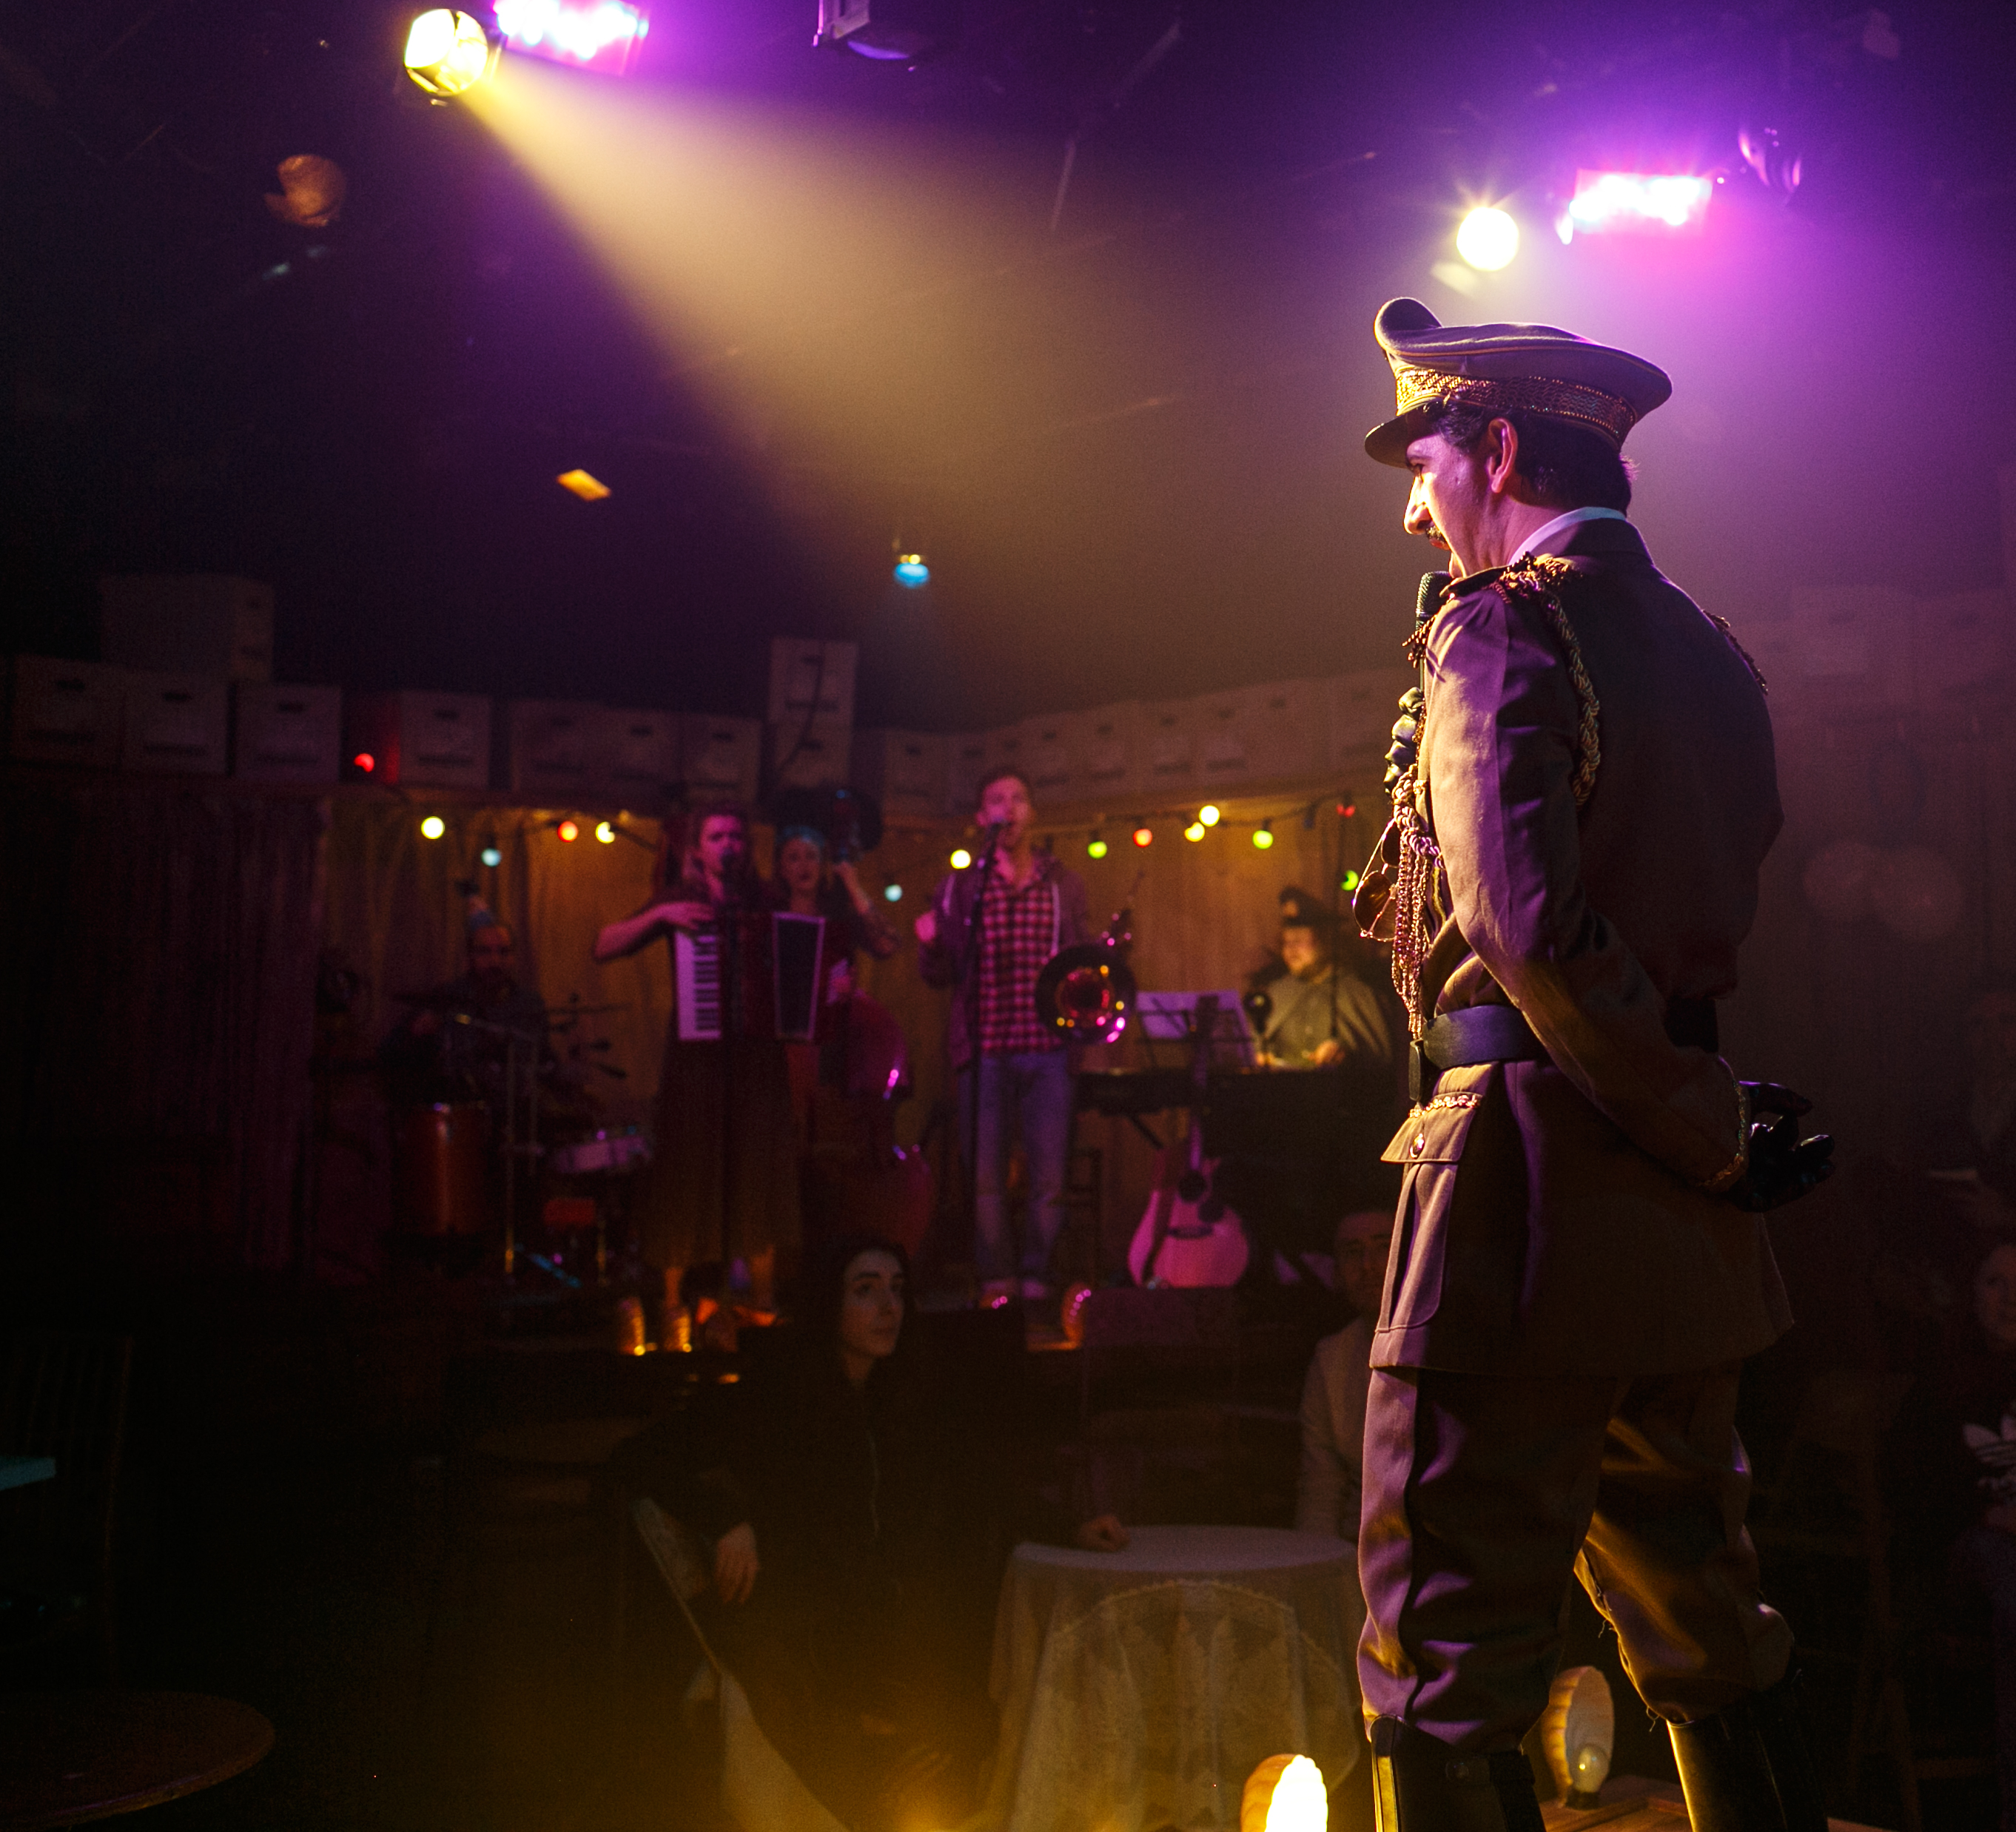 Greg Barnett as The General in These Trees are Made of Blood. Photo Credit Darren Bell